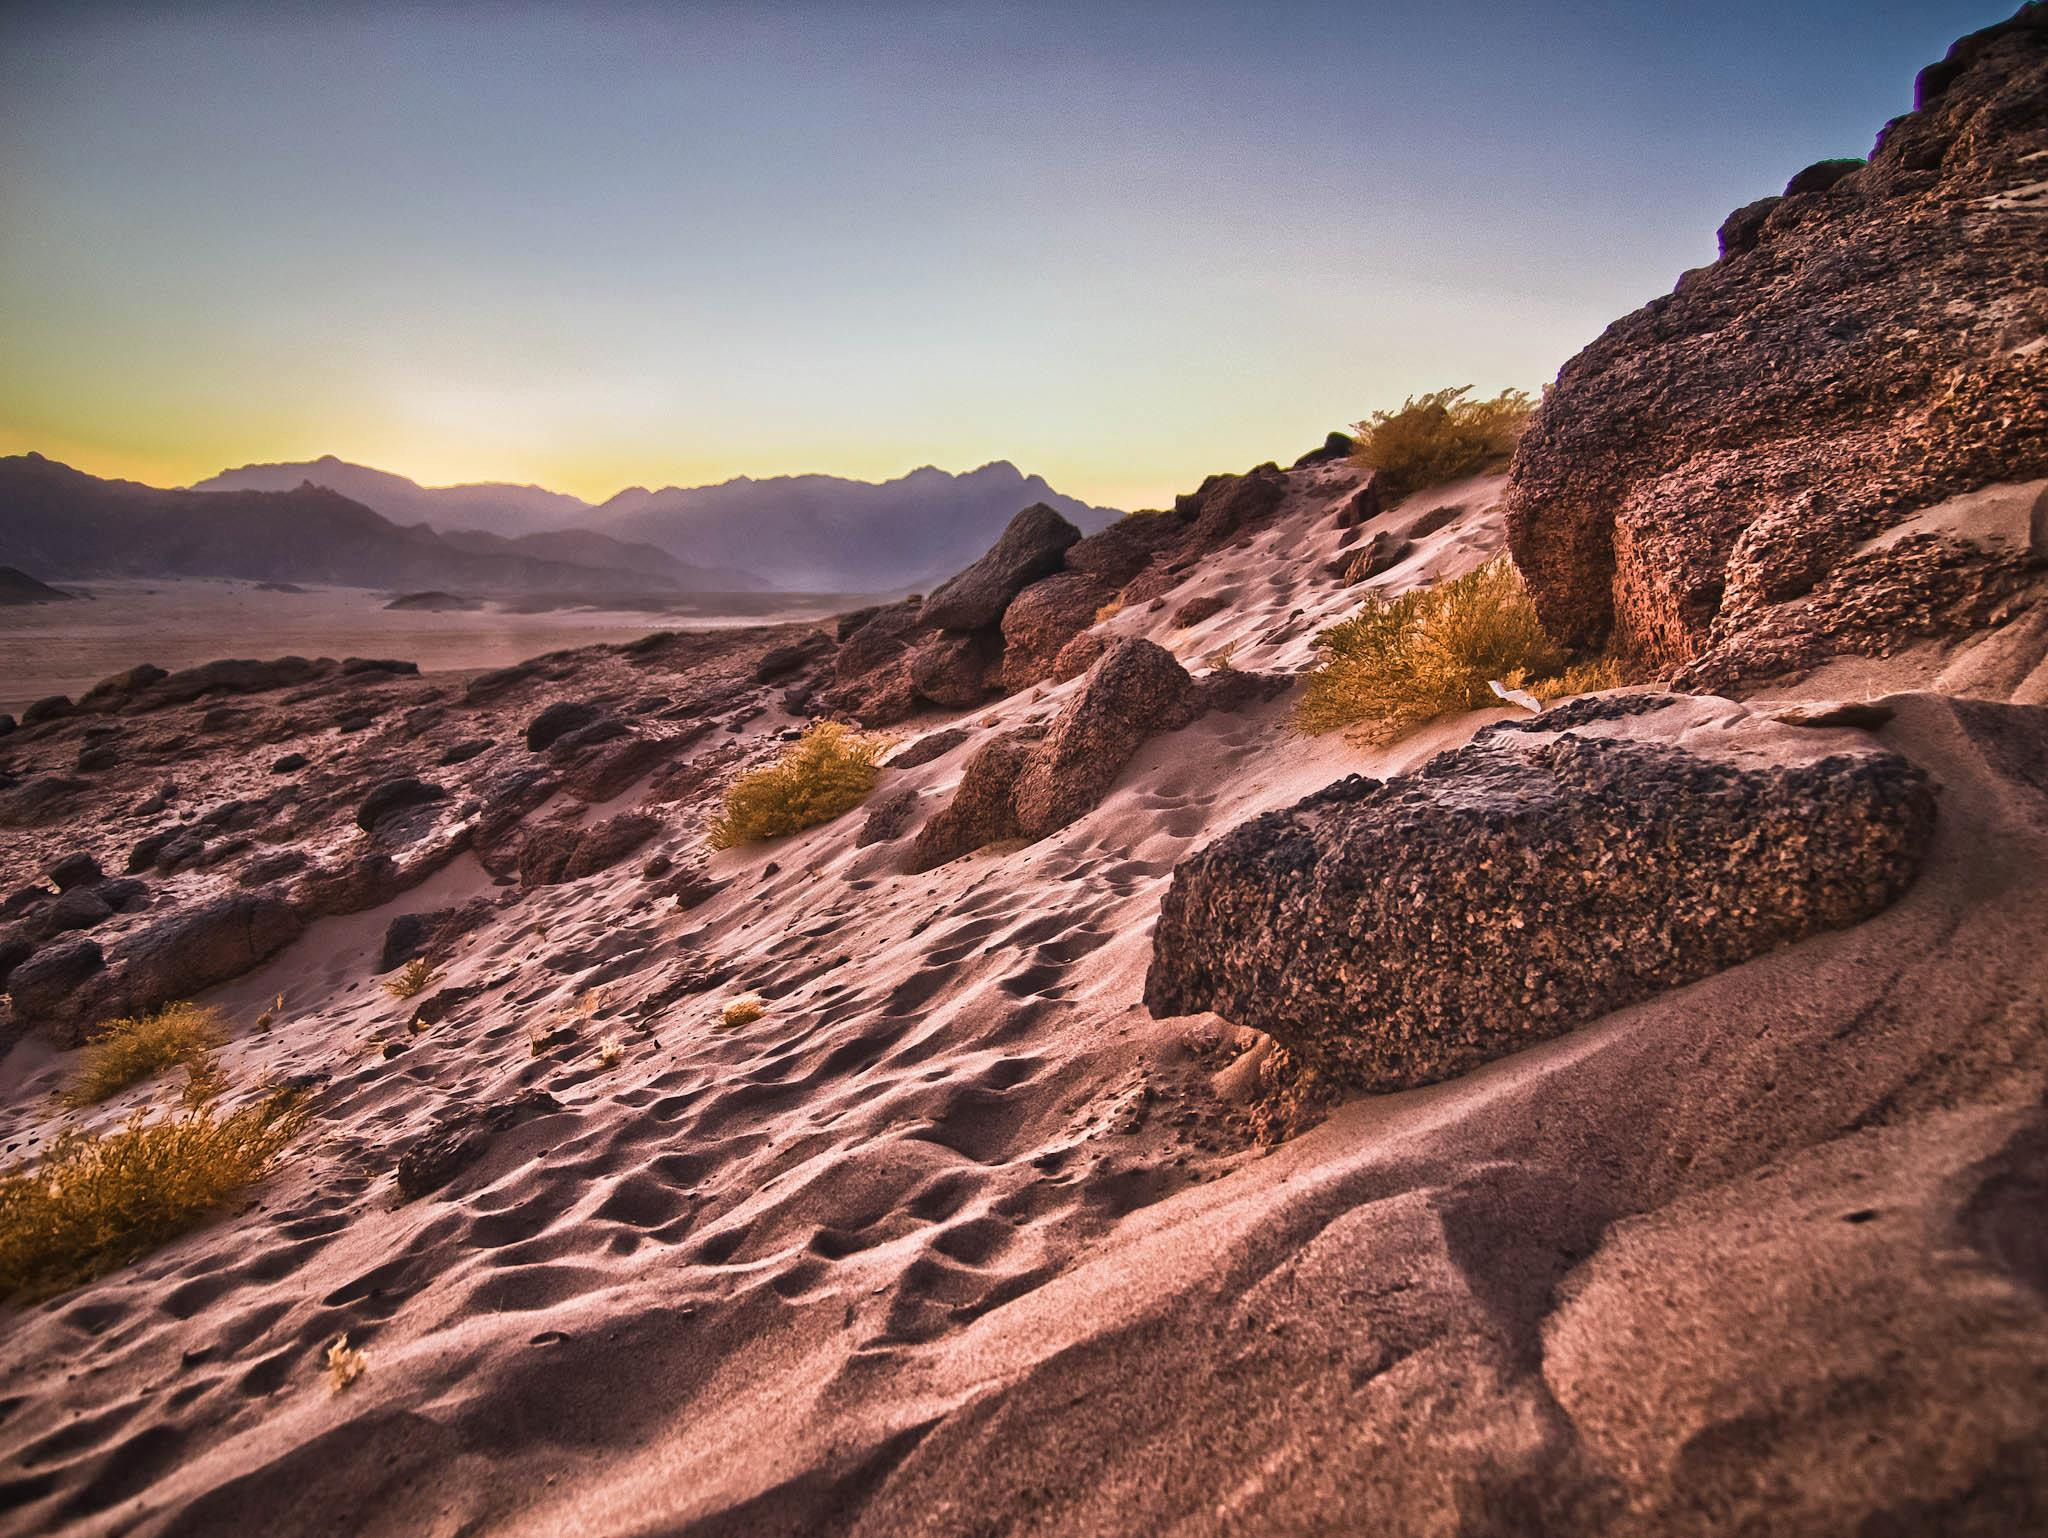 Photograph Sinai desert sunset, Sharm El Sheikh by Hugh Jones on 500px